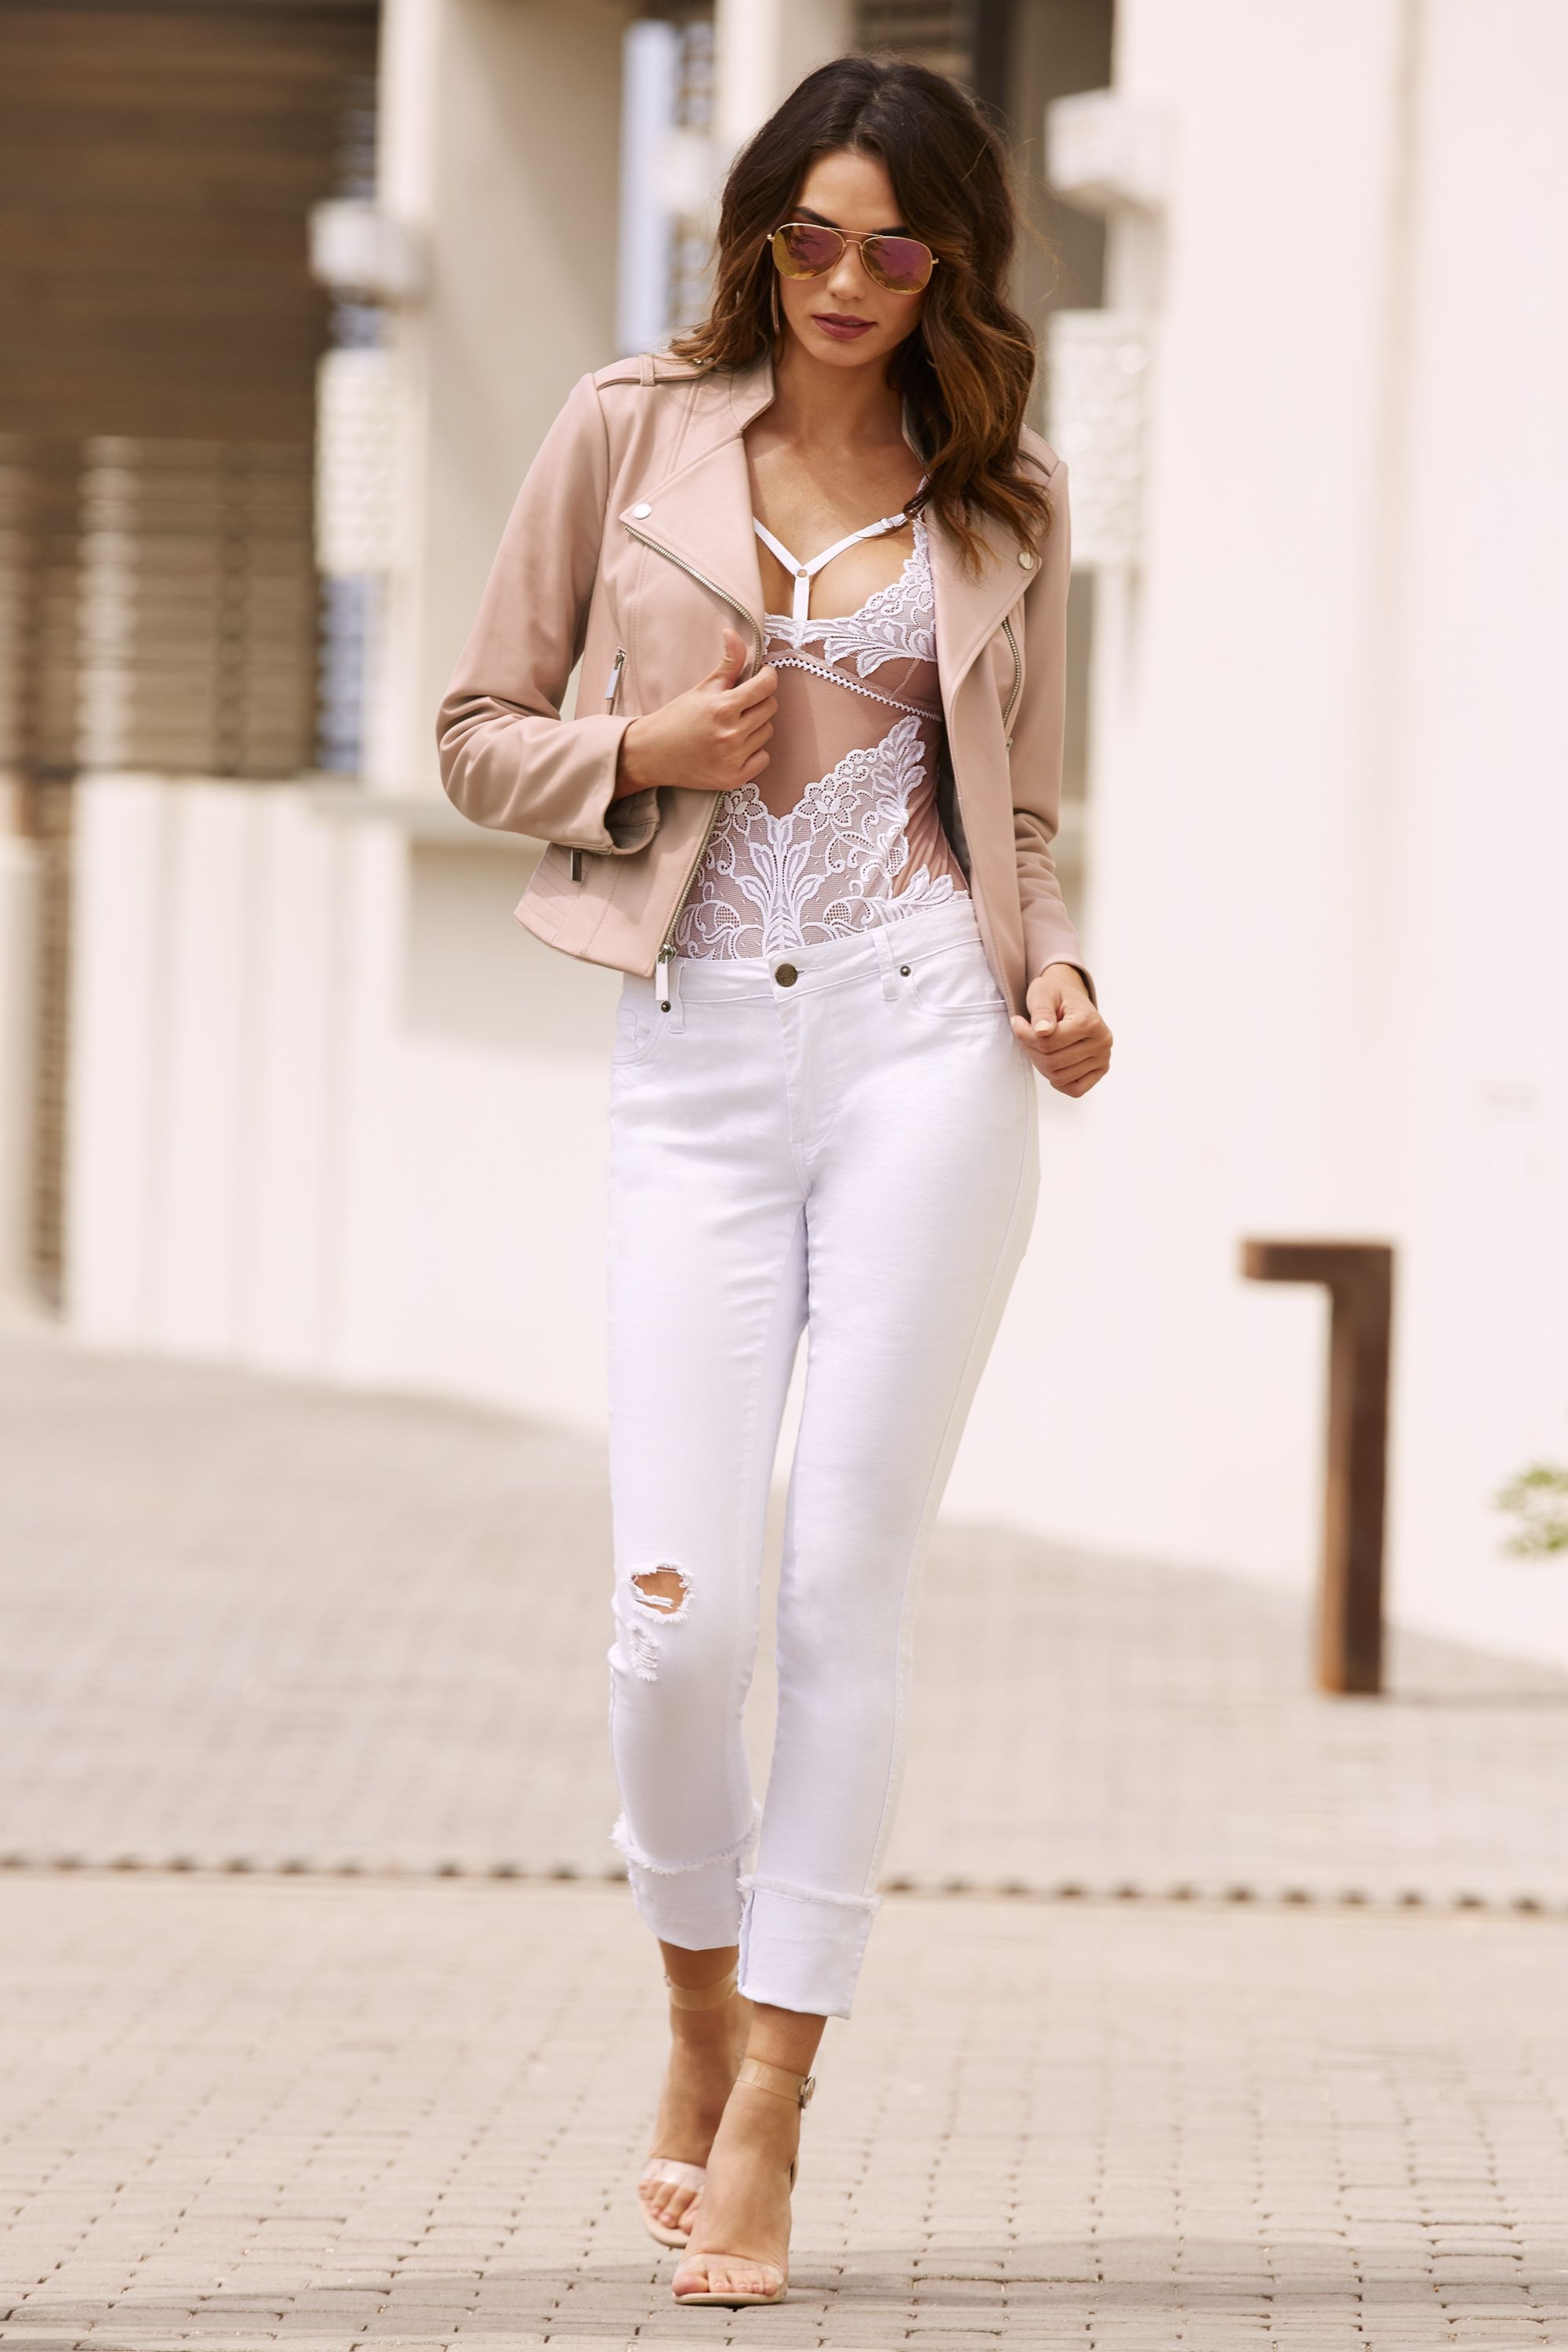 83abed455 Women s Blush Lace Bodysuit paired with our Proper Leather Moto Jacket and  our Cuffed Frayed Ankle Jean by Boston Proper.  leatherjacket  denim   frayeddenim ...